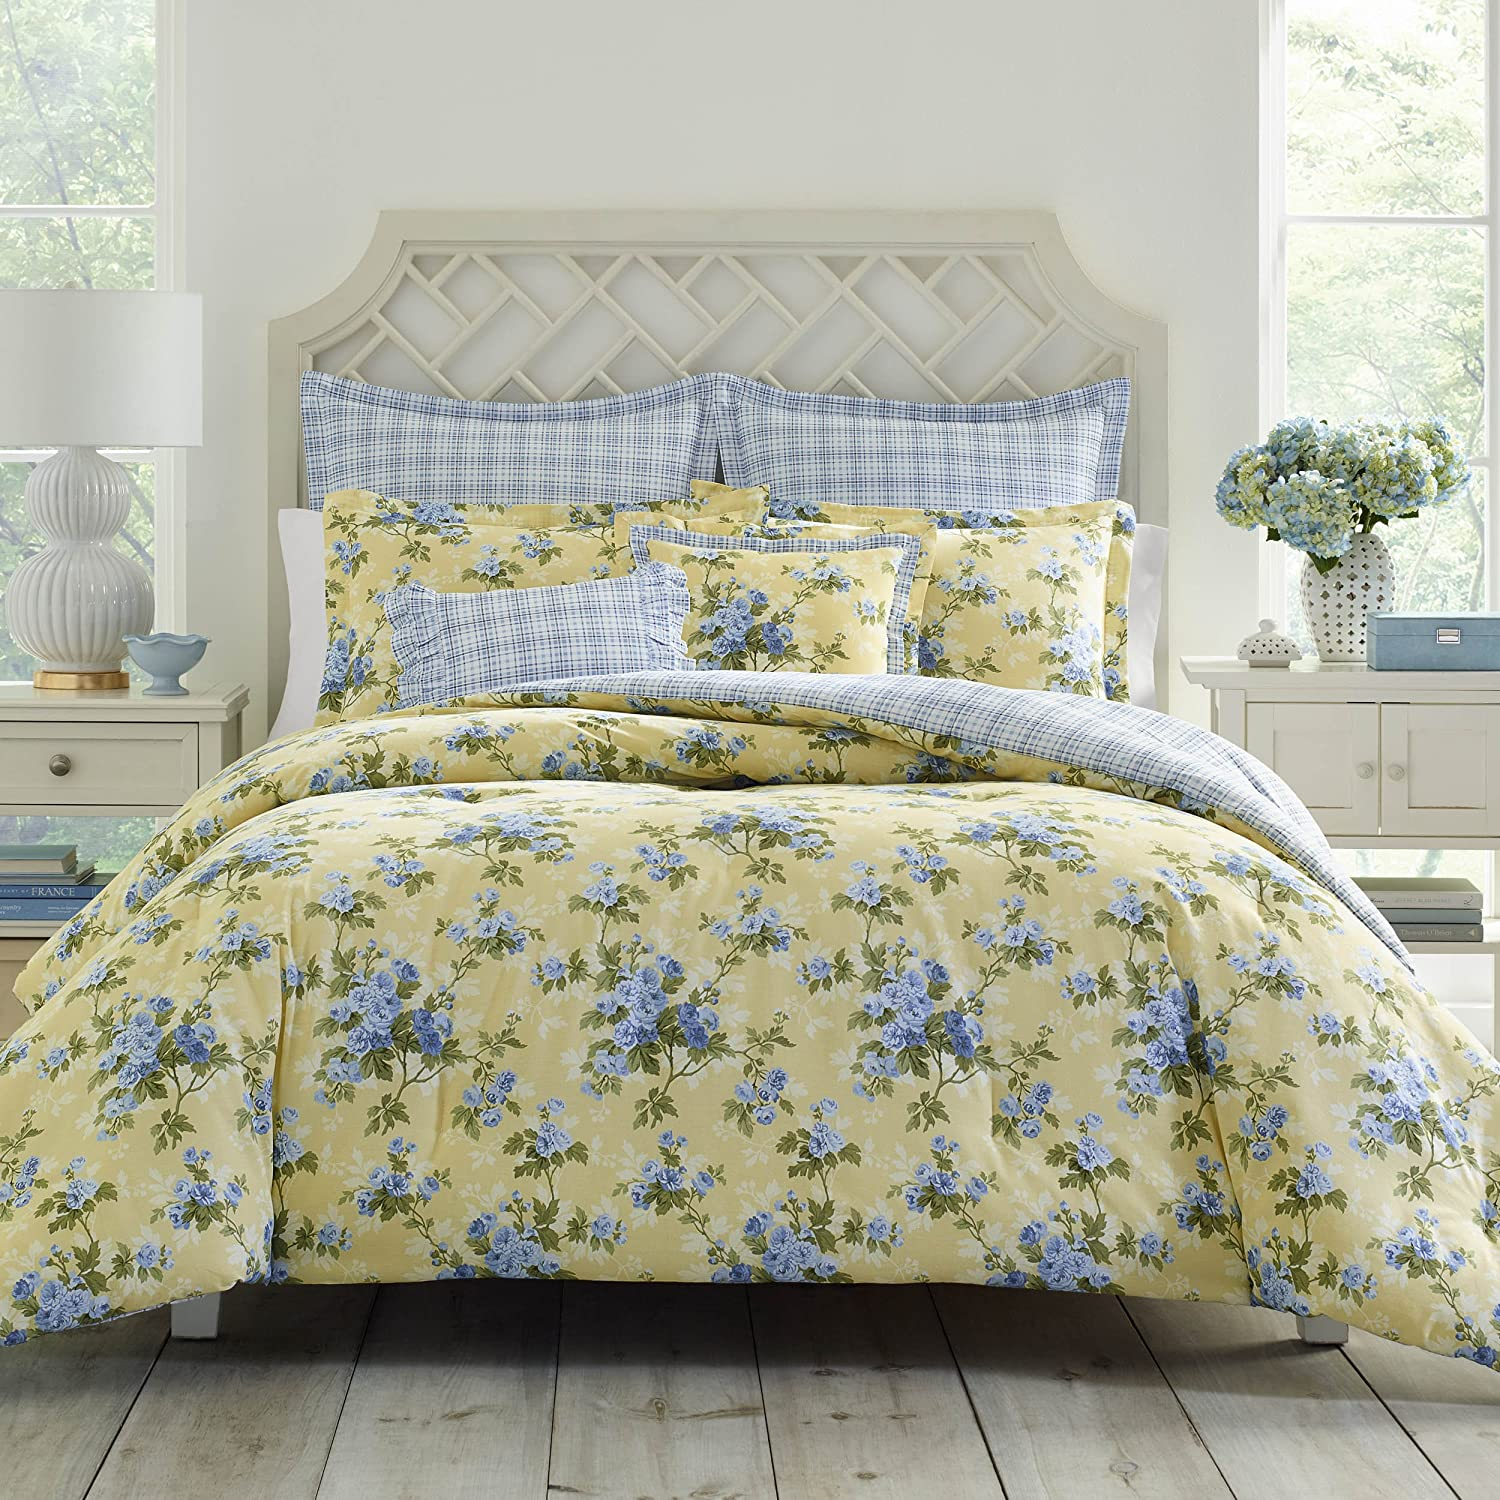 Laura Ashley Cassidy Comforter Set, Full/Queen, Pastel Yellow